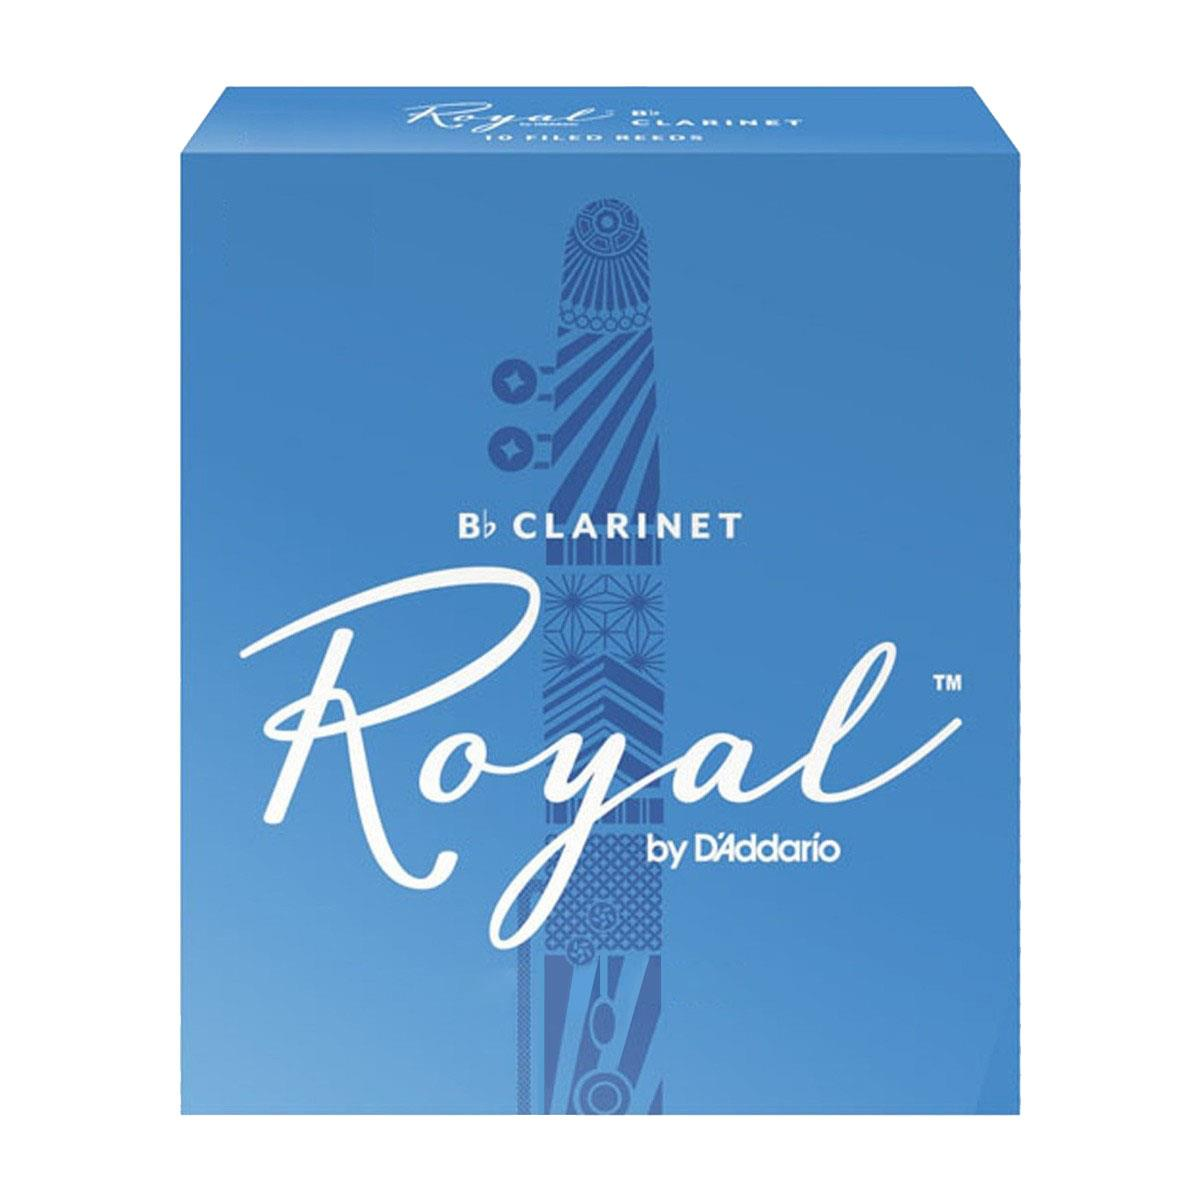 Image of D'Addario Woodwind Royal RCB1050 Bb Clarinet Reeds Strength 5 10-pack 0046716533289